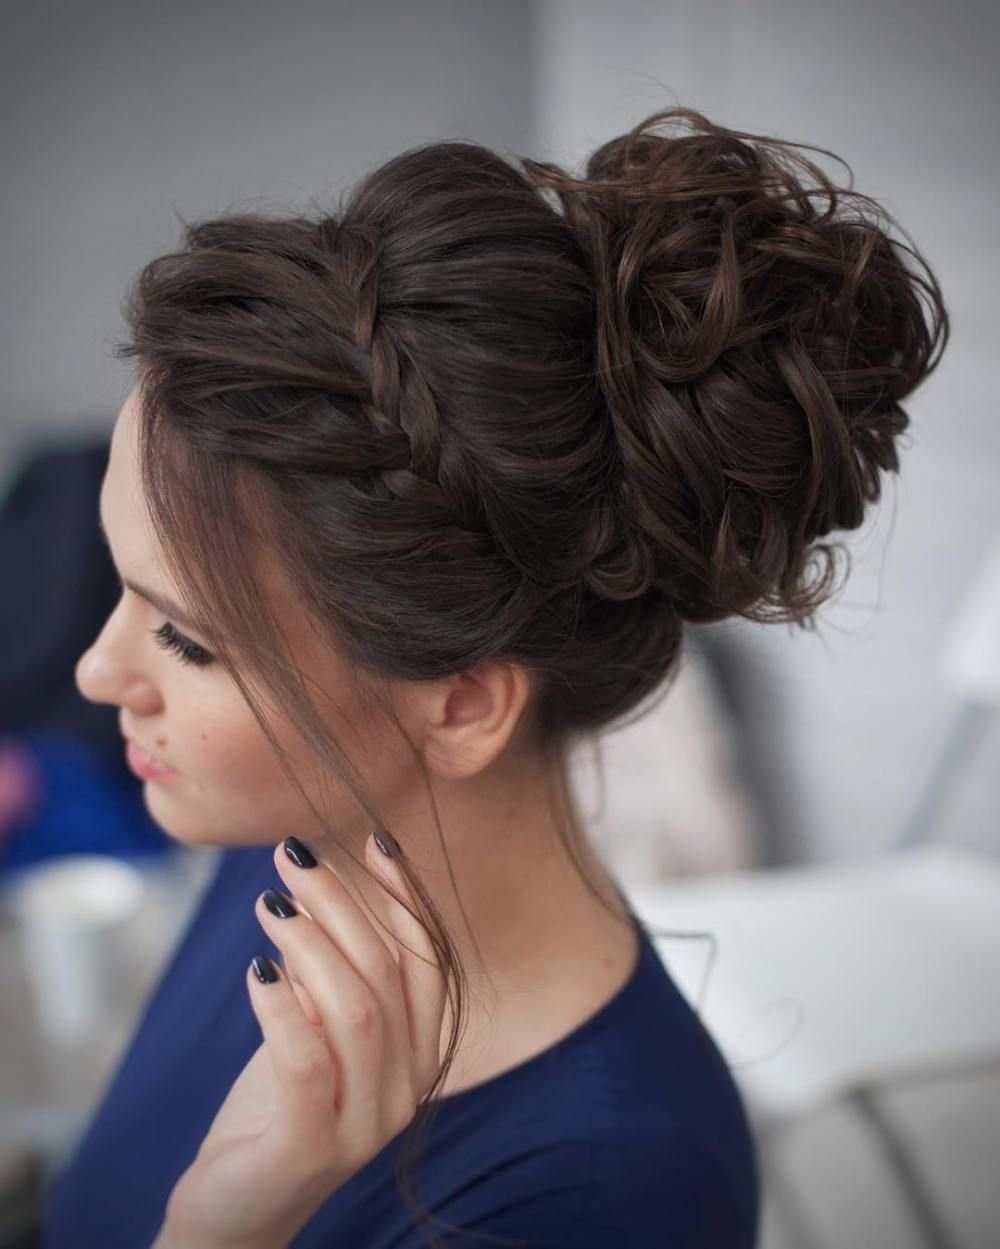 10 Most Recommended Homecoming Hair Ideas For Long Hair 40 most delightful prom updos for long hair in 2018 updo prom and 1